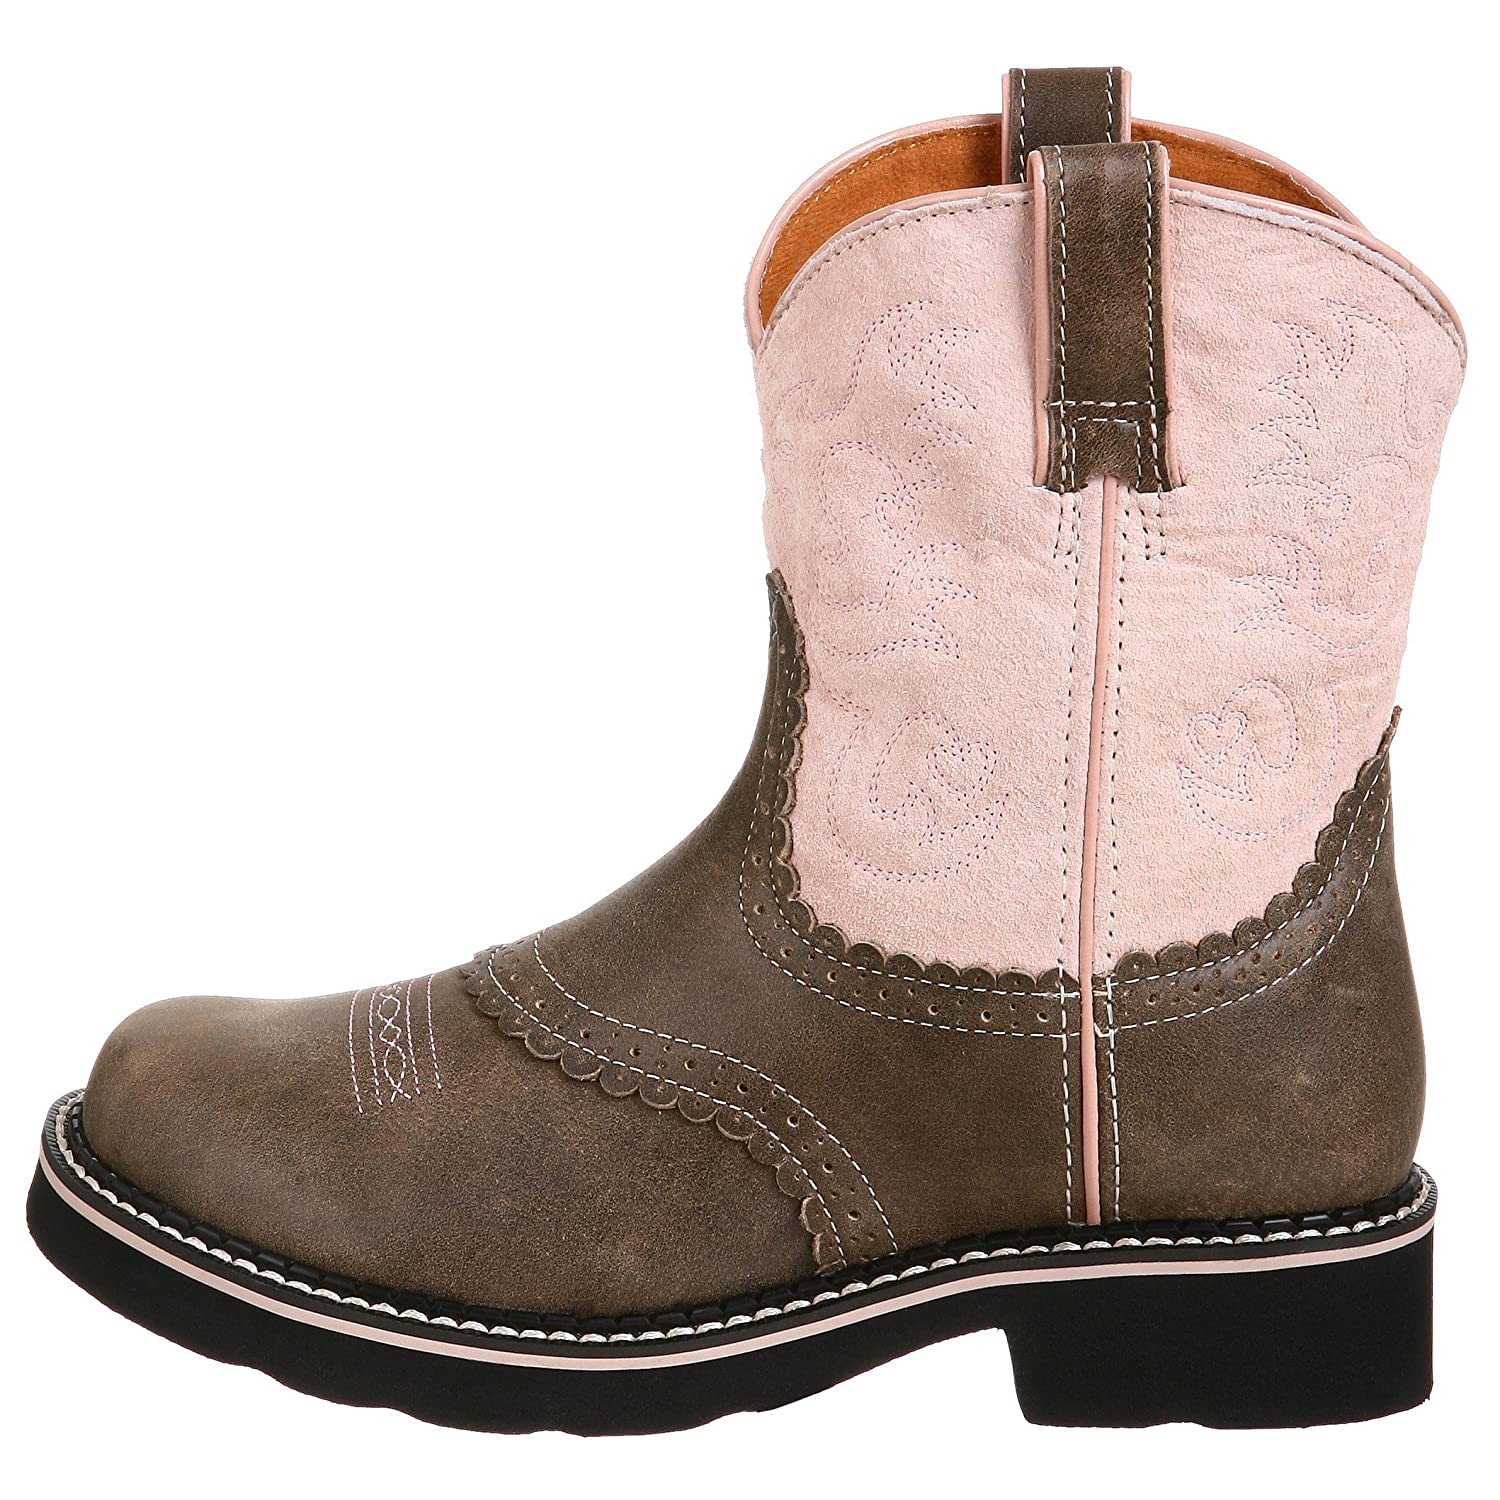 Amazon Com Ariat Fatbaby Western Boot Toddler Little Kid Big Kid